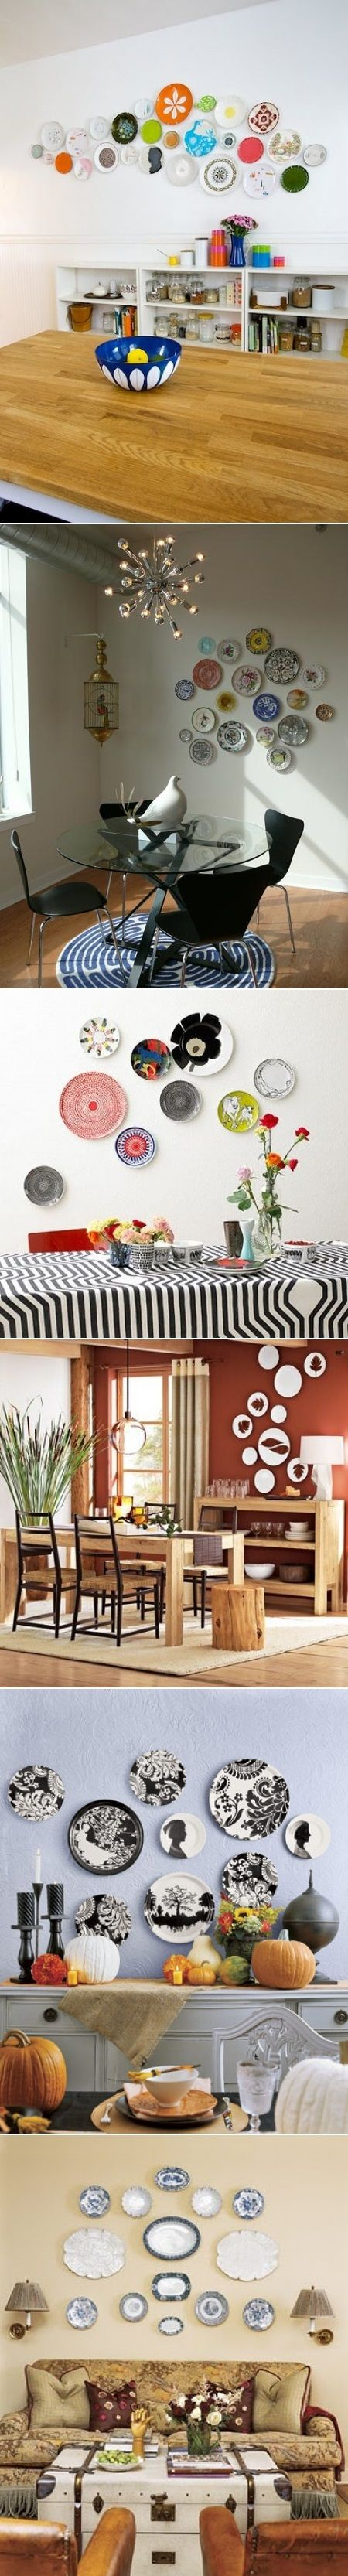 DIY Plates Wall Collage. Lovely. Perhaps would be ideal between my kitchen  cupboards and